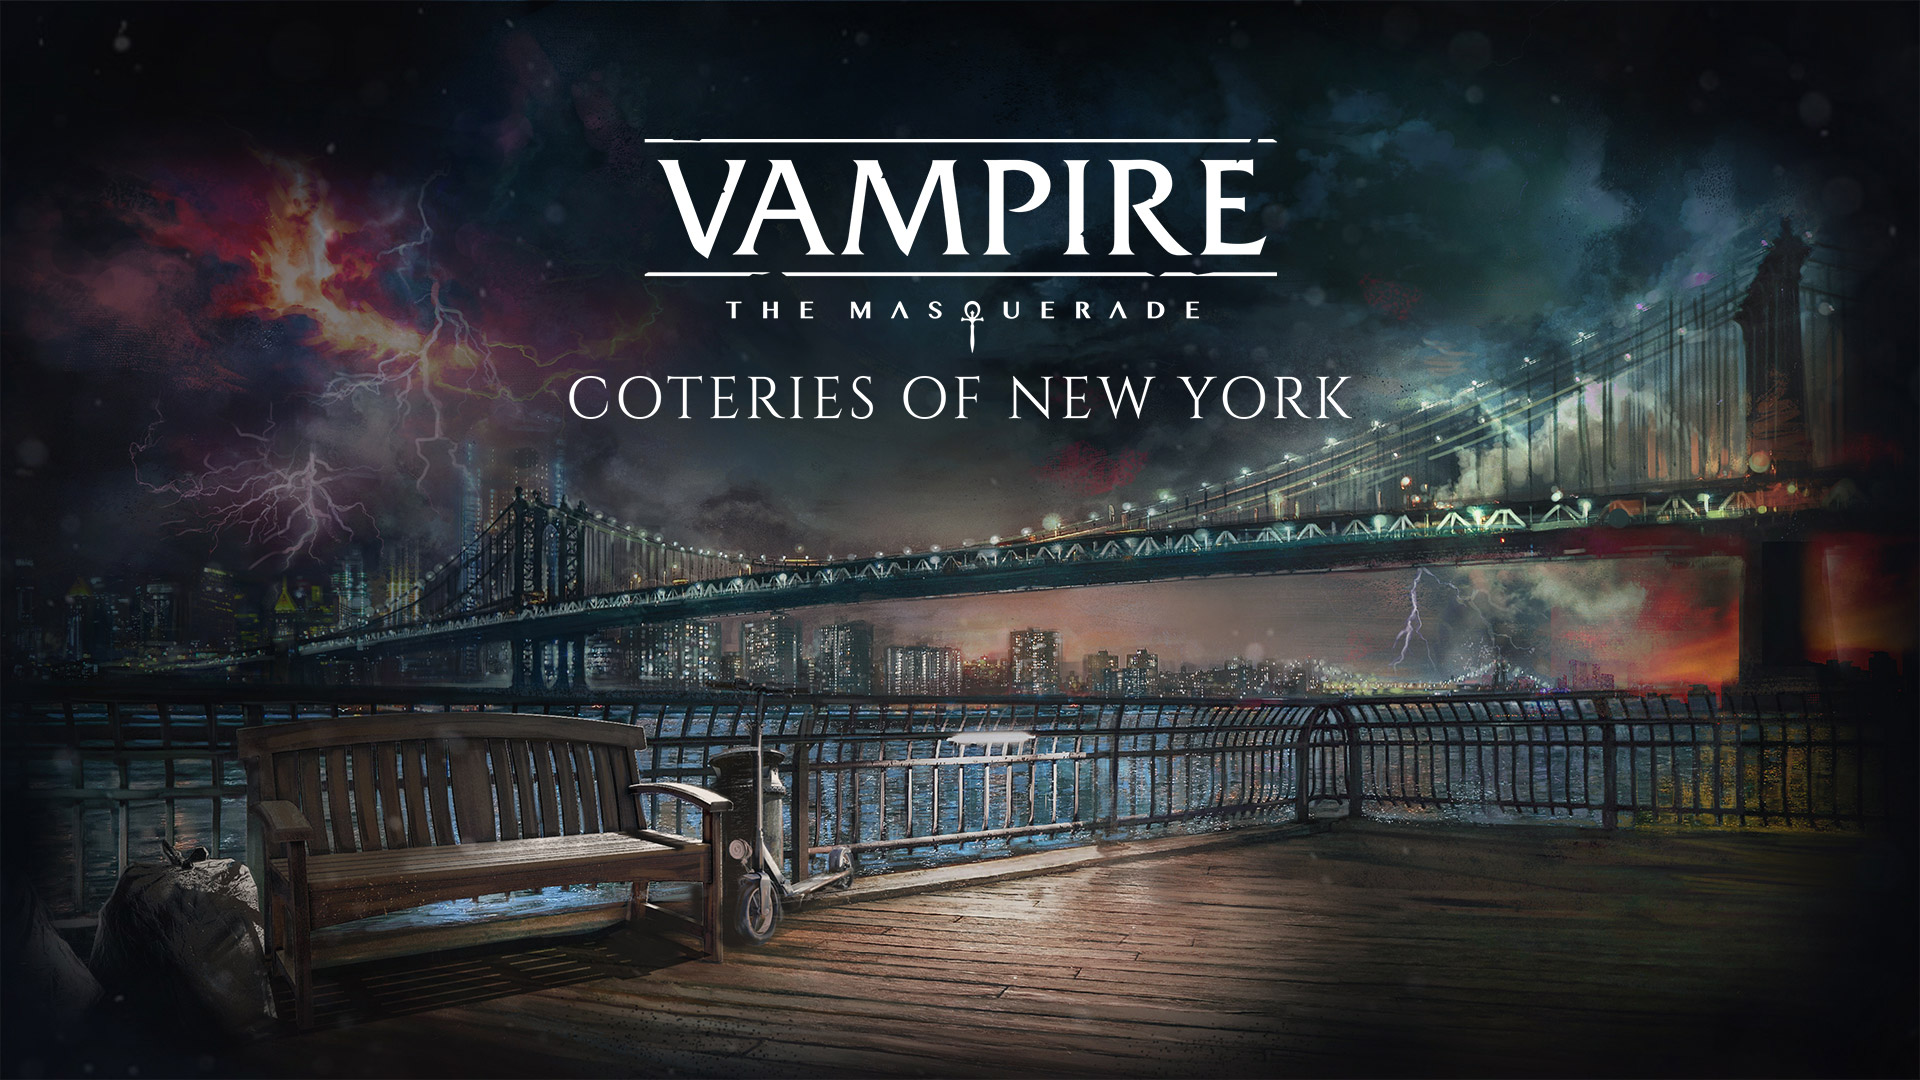 Vampire: The Masquerade - Coteries of New York Wallpaper in 1920x1080